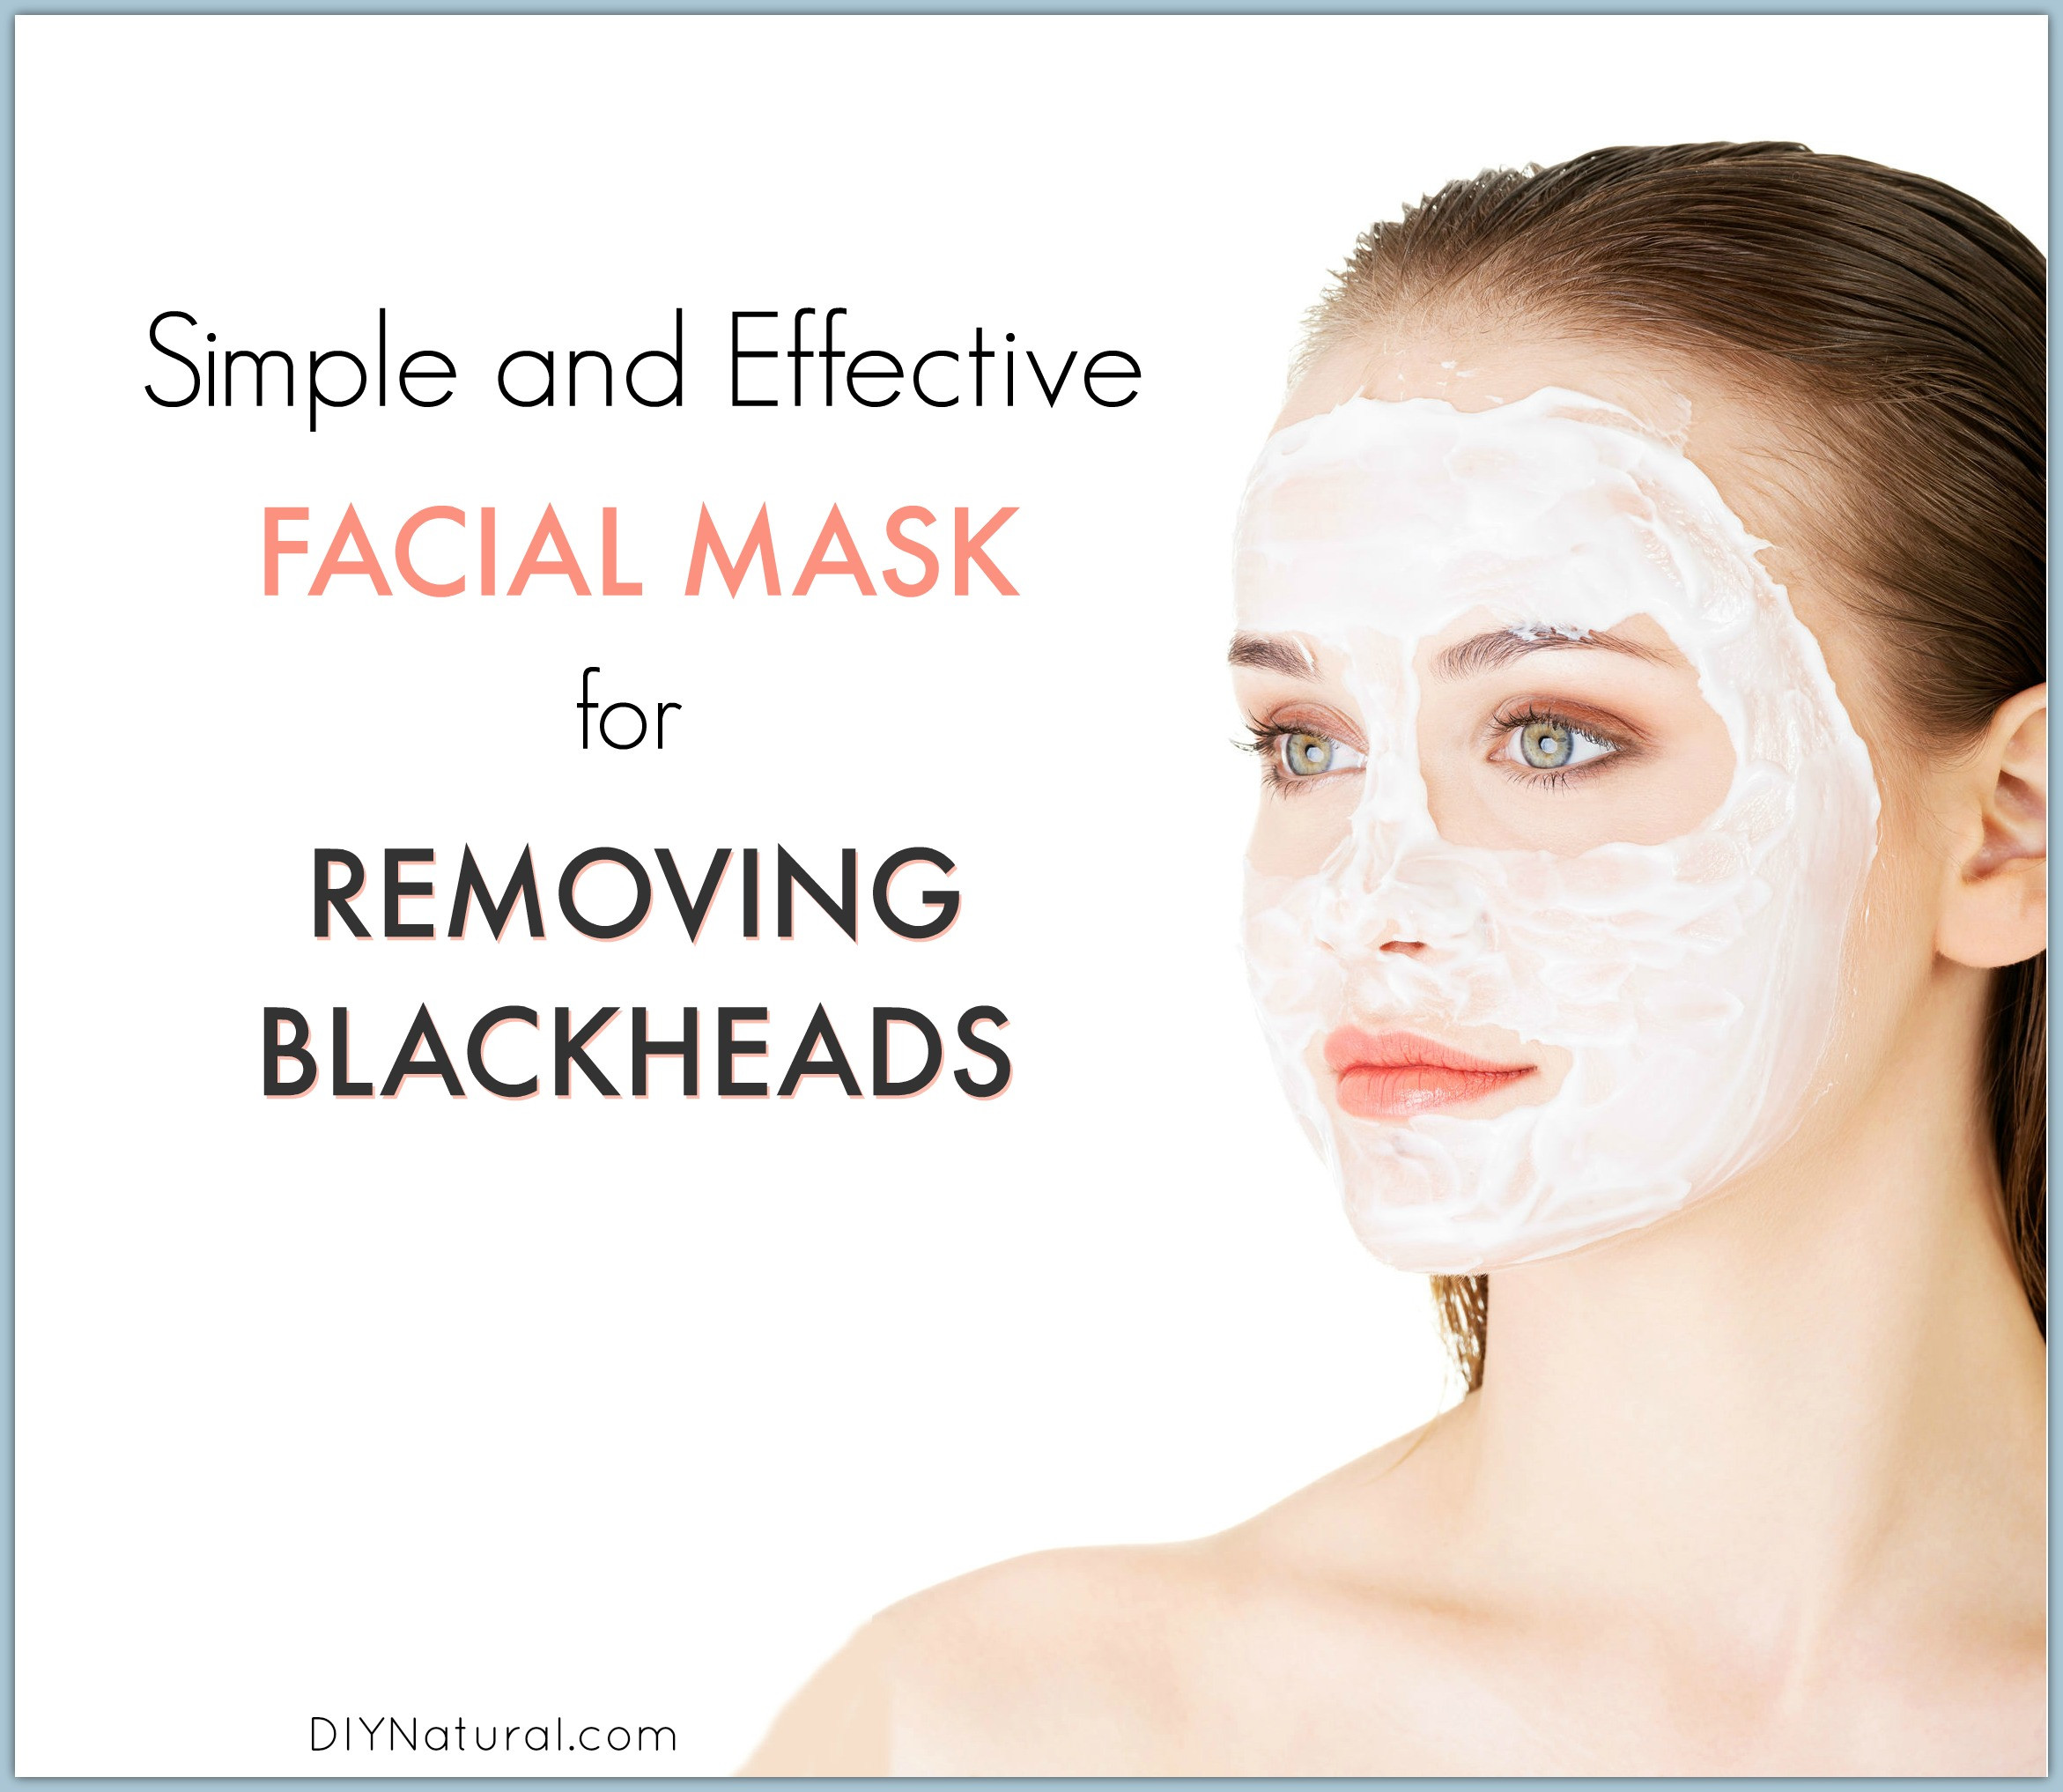 DIY Face Masks For Blackheads  Blackheads A Quick and Easy Homemade Blackhead Mask